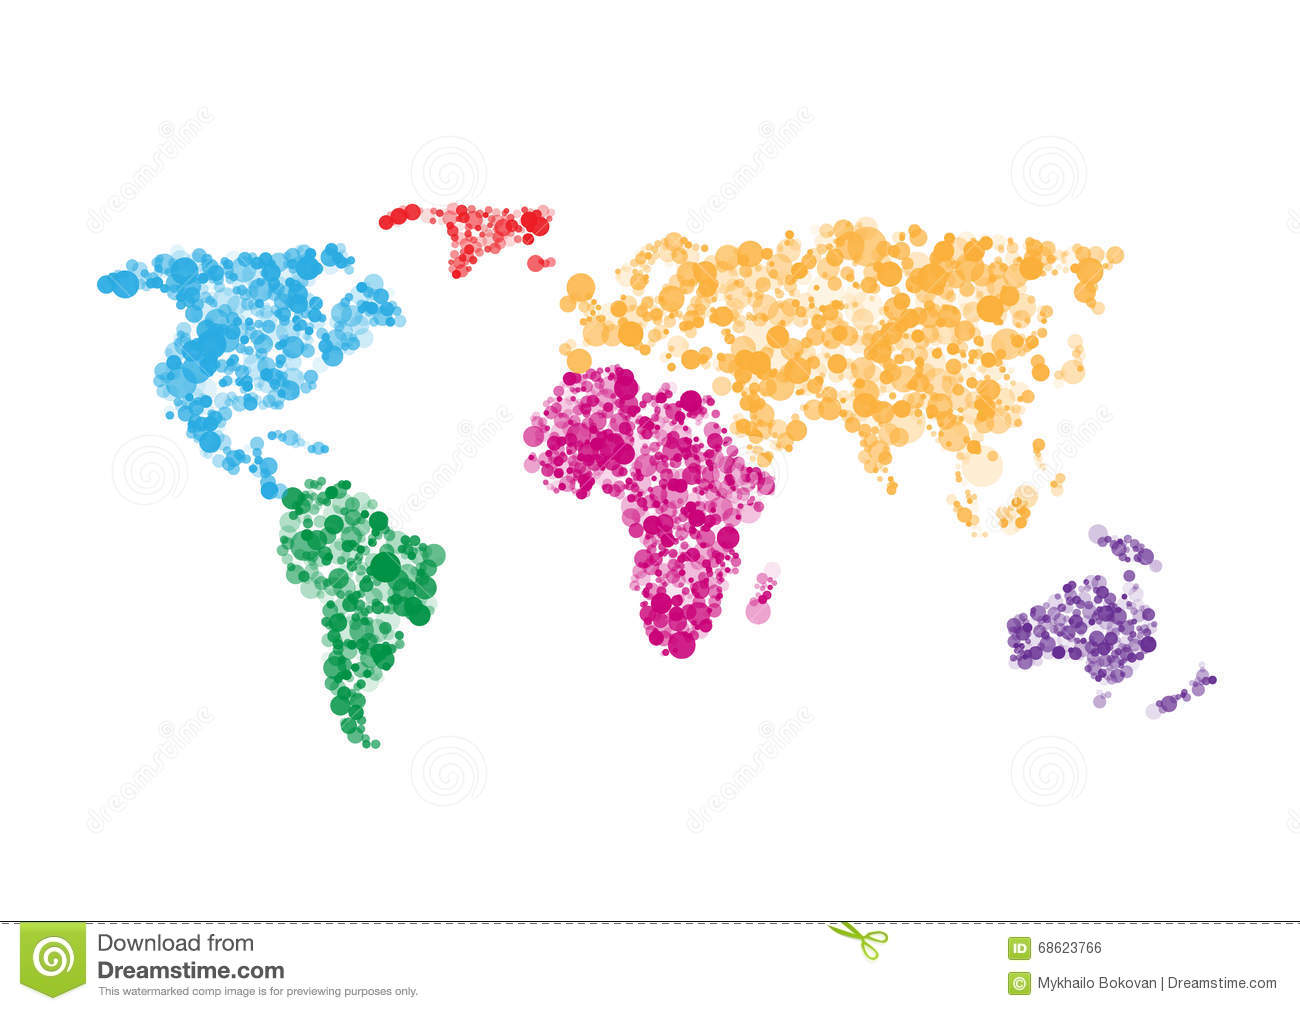 Colorful World map stock vector. Illustration of international